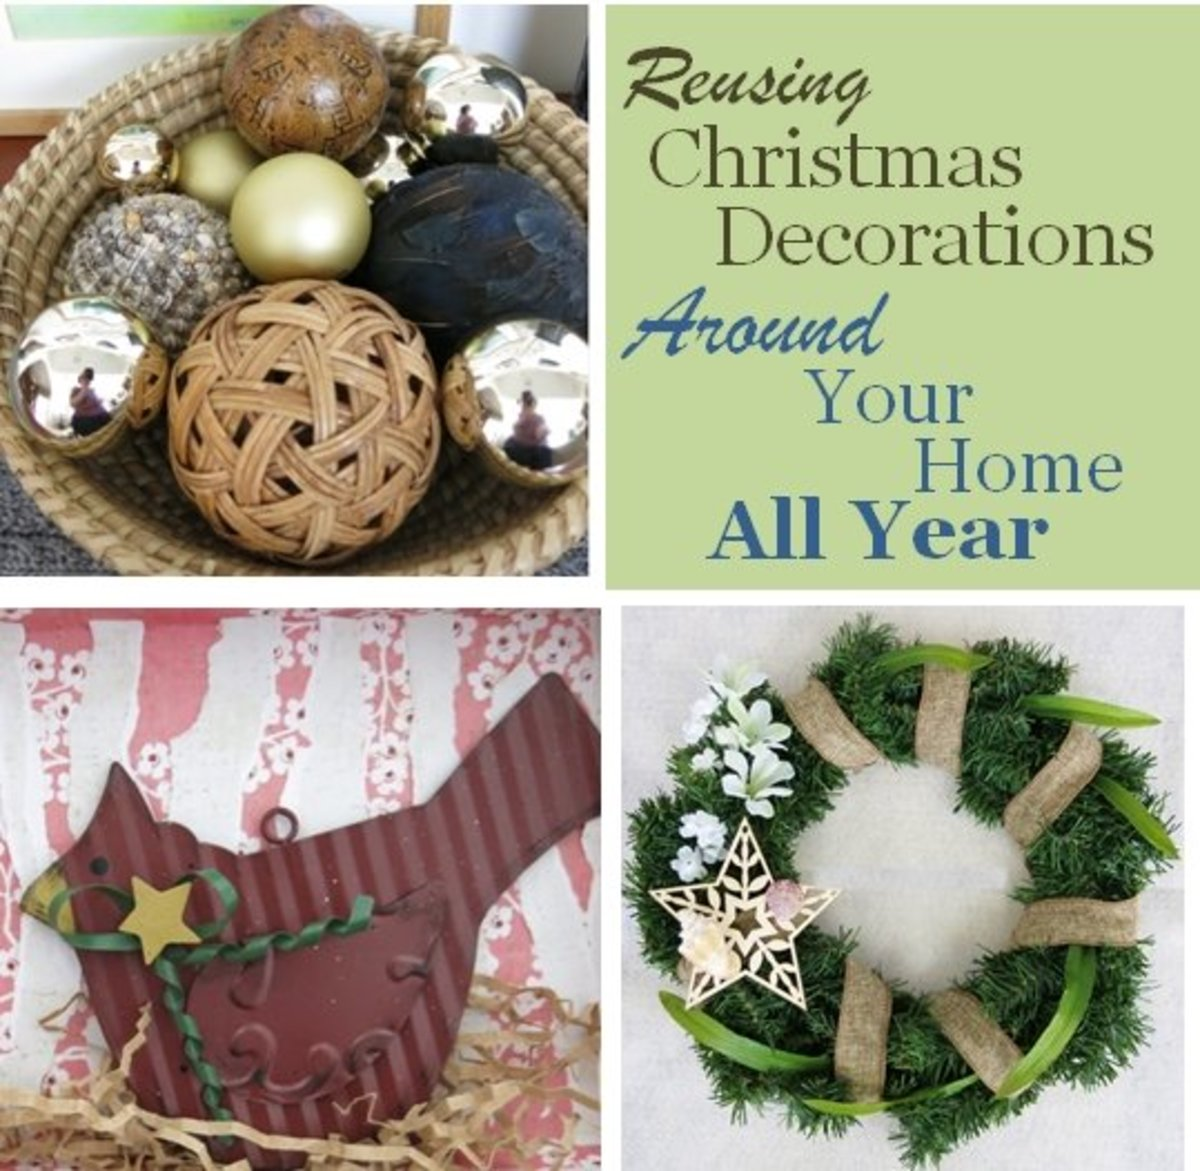 Reuse your favorite Christmas decorations around your home all year round.